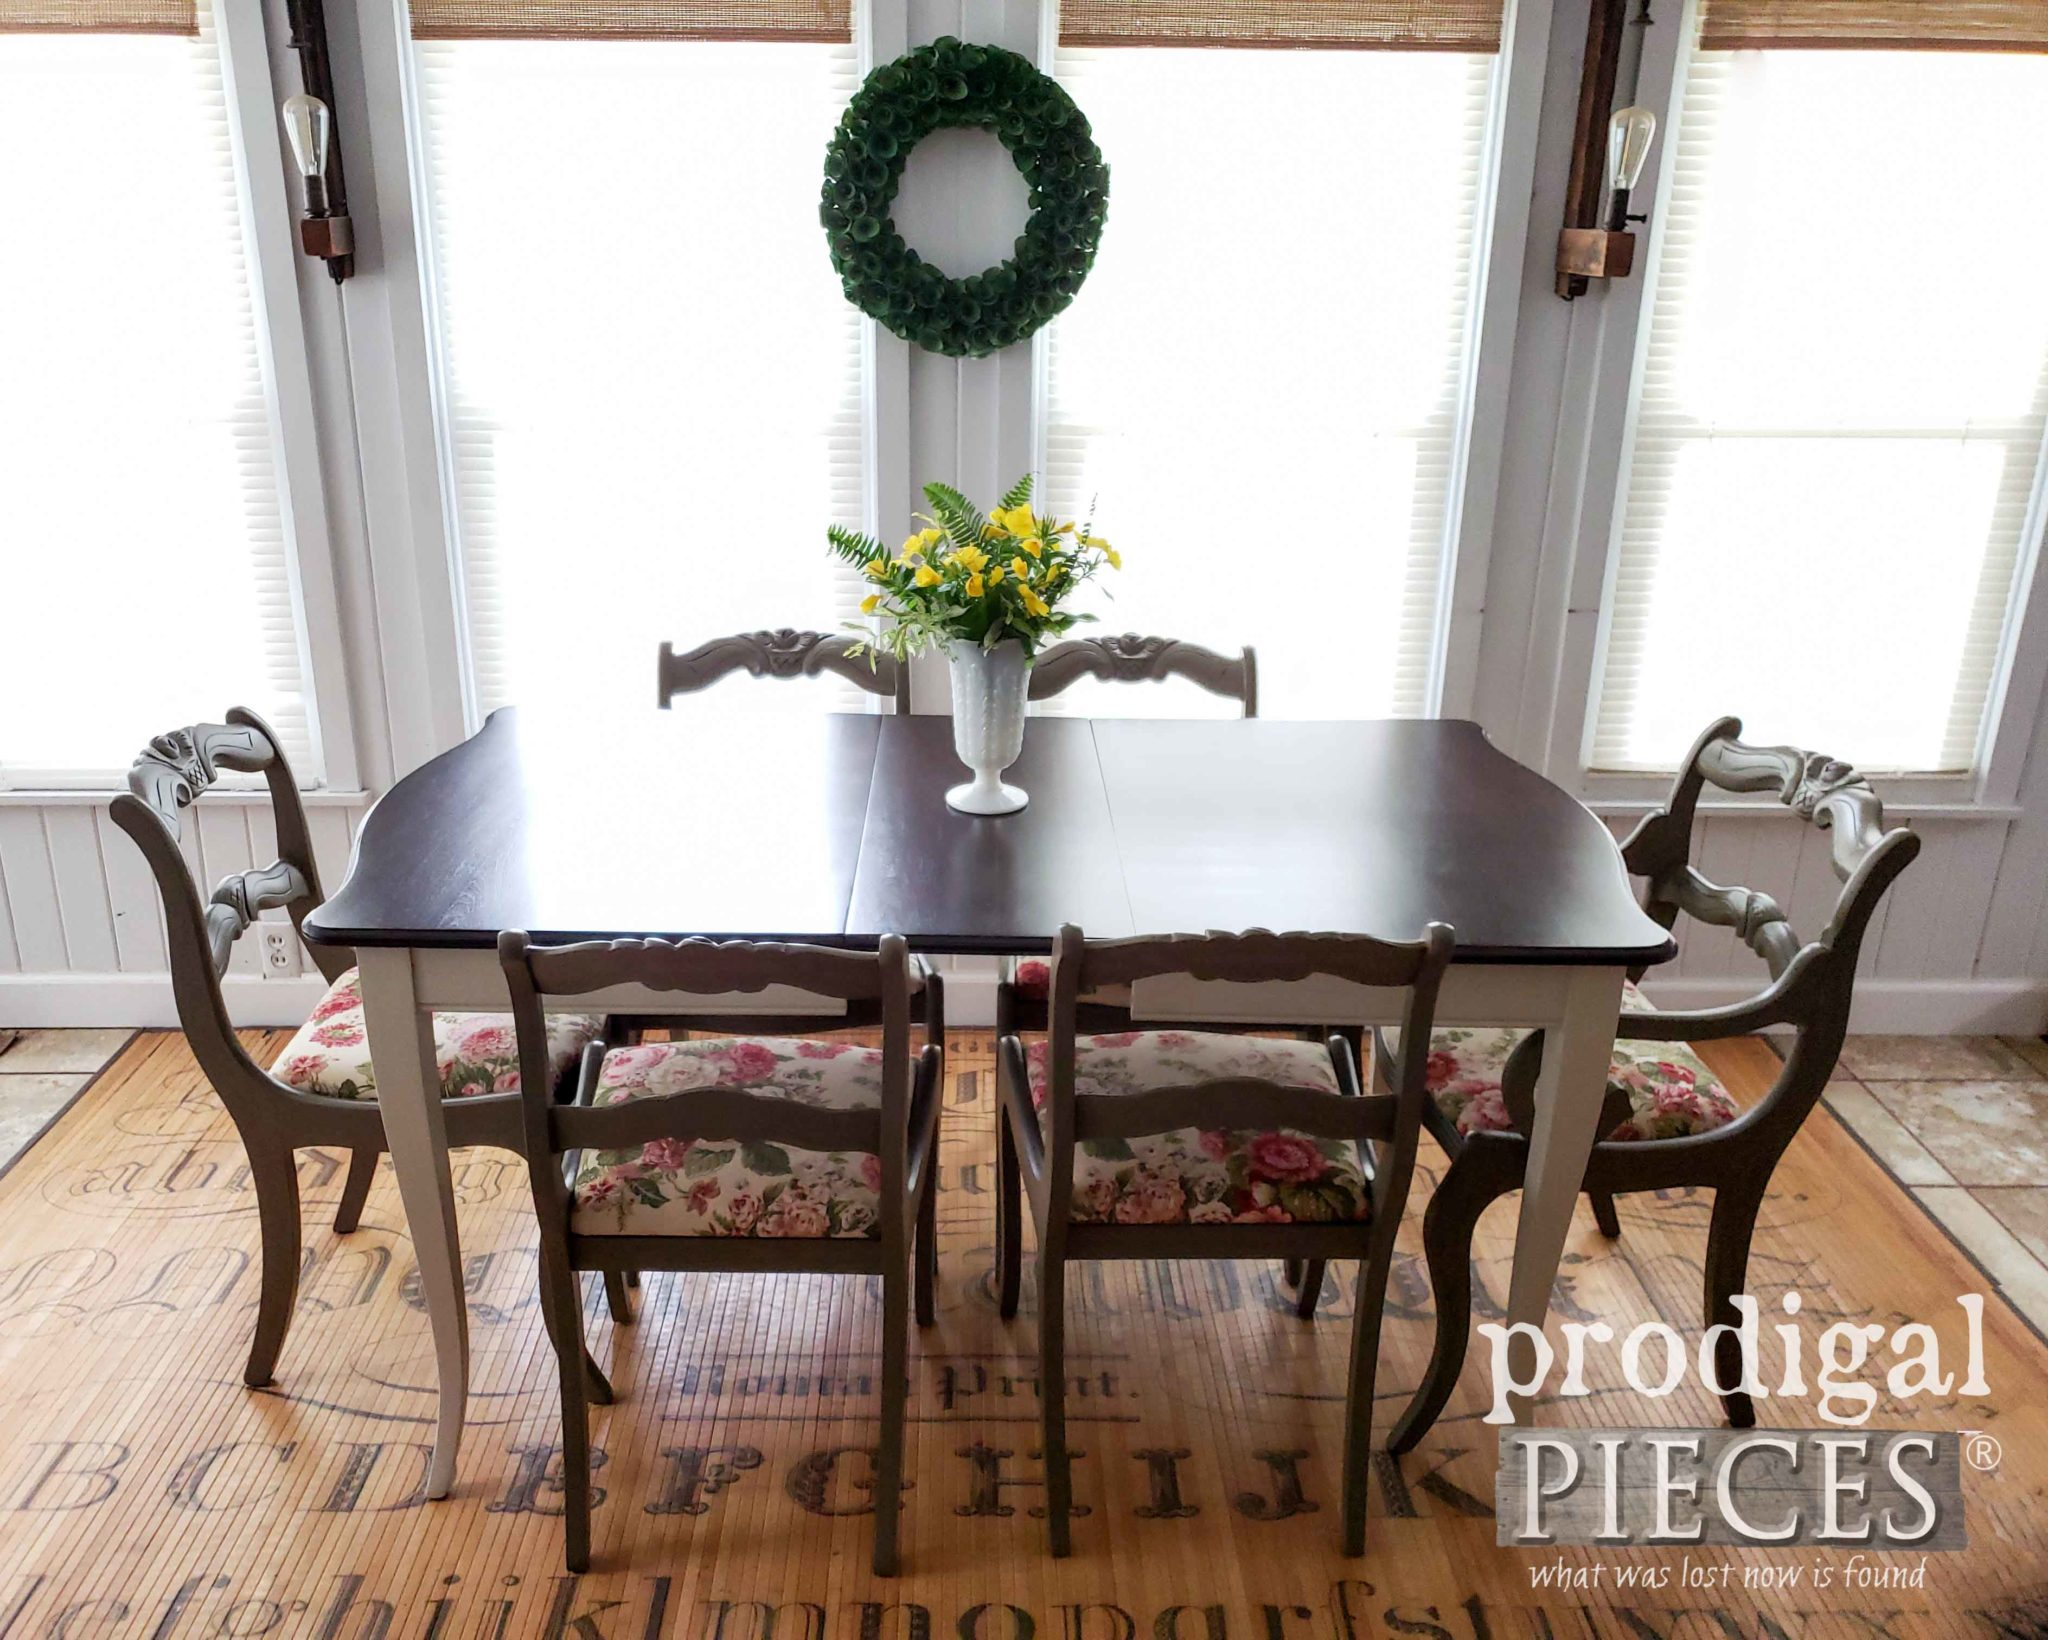 Beautifully Restored Vintage Dining Room Table with Upholstered Chairs by Larissa of Prodigal Pieces | prodigalpieces.com